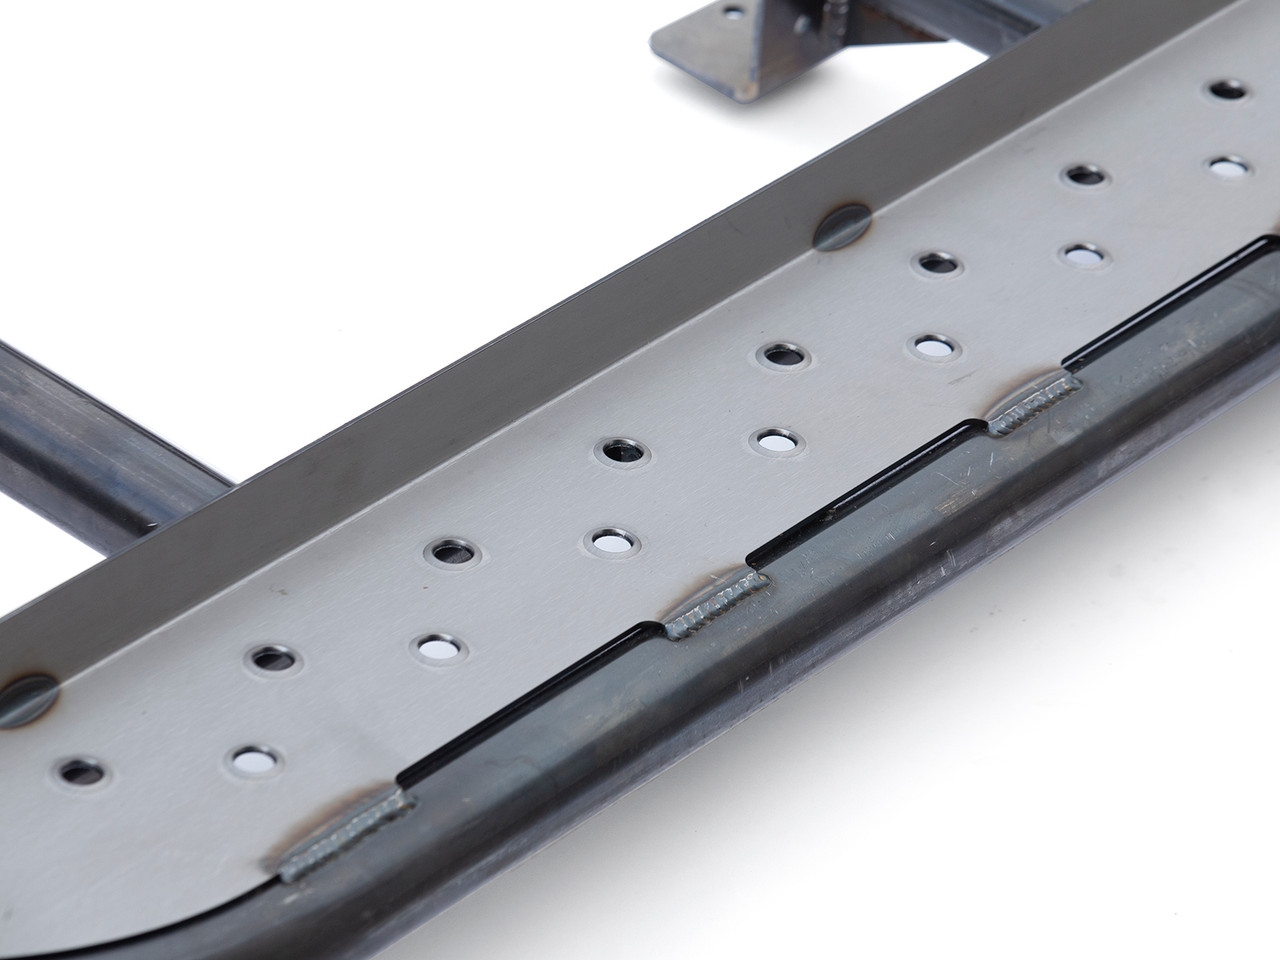 Dimple die step is MIG welded to the tube structure of the GR rocker step